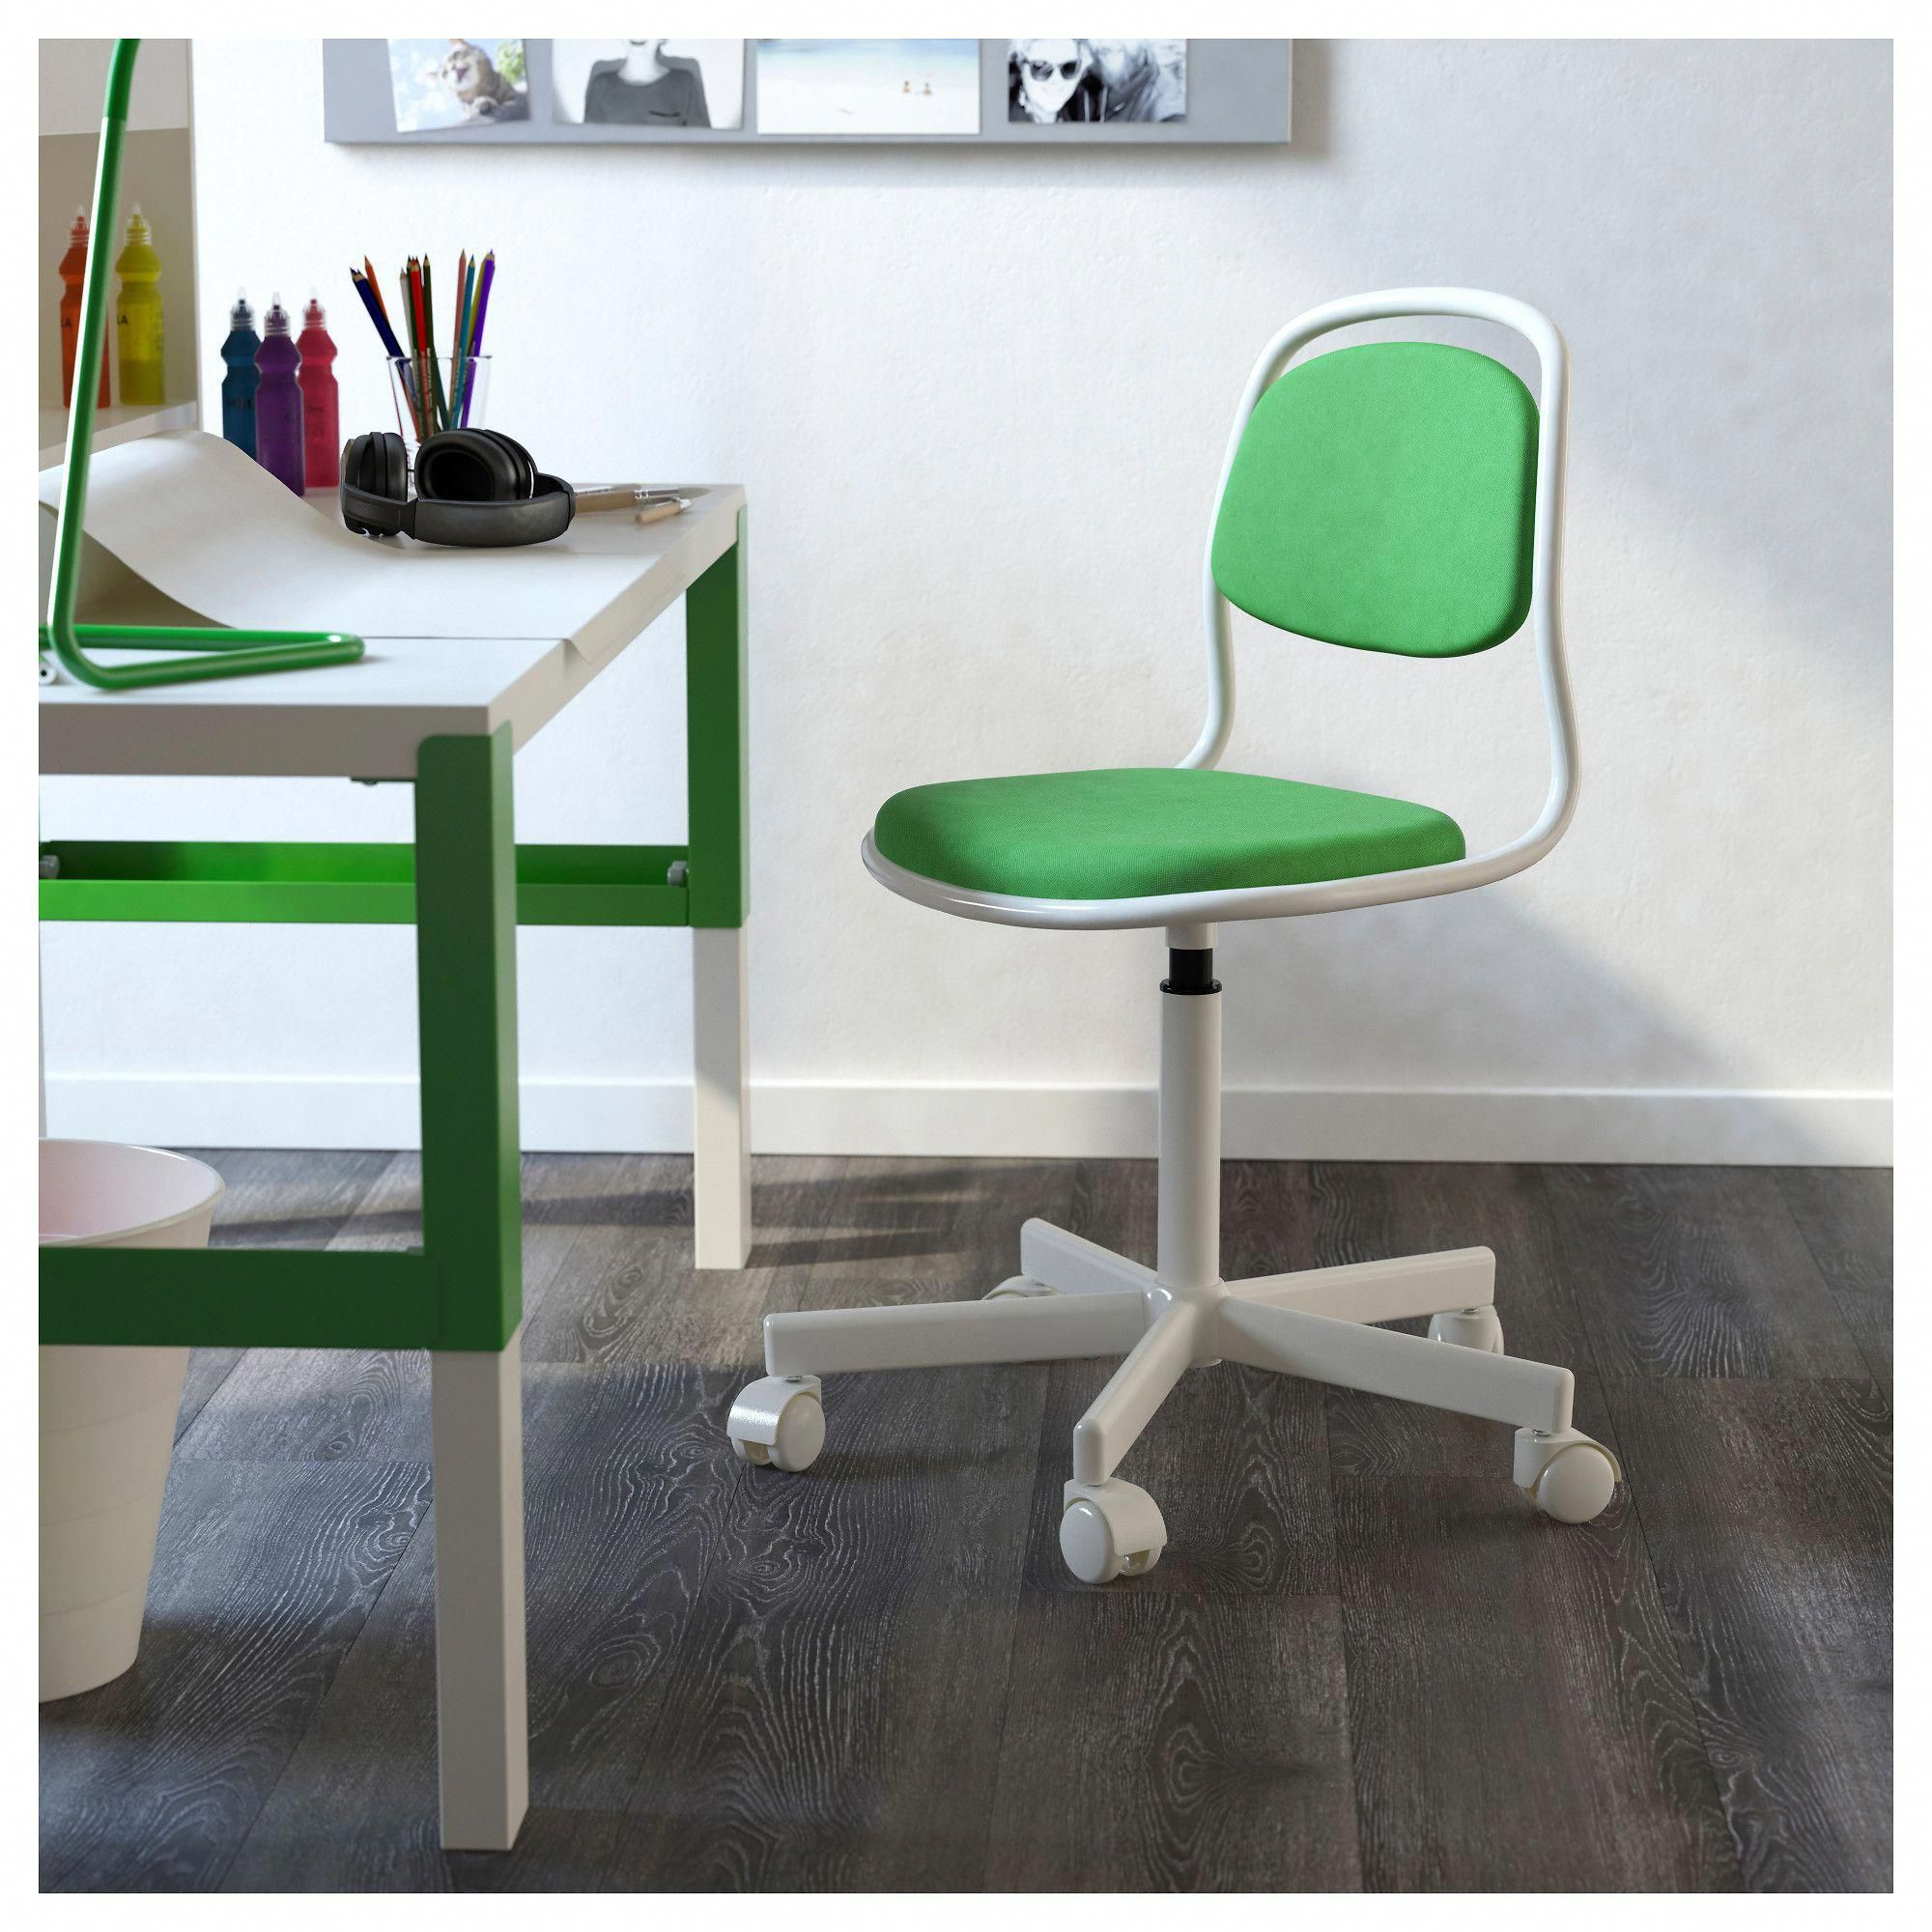 Superb Ikea Orfjall Childs Desk Chair White Vissle Bright Green Gmtry Best Dining Table And Chair Ideas Images Gmtryco